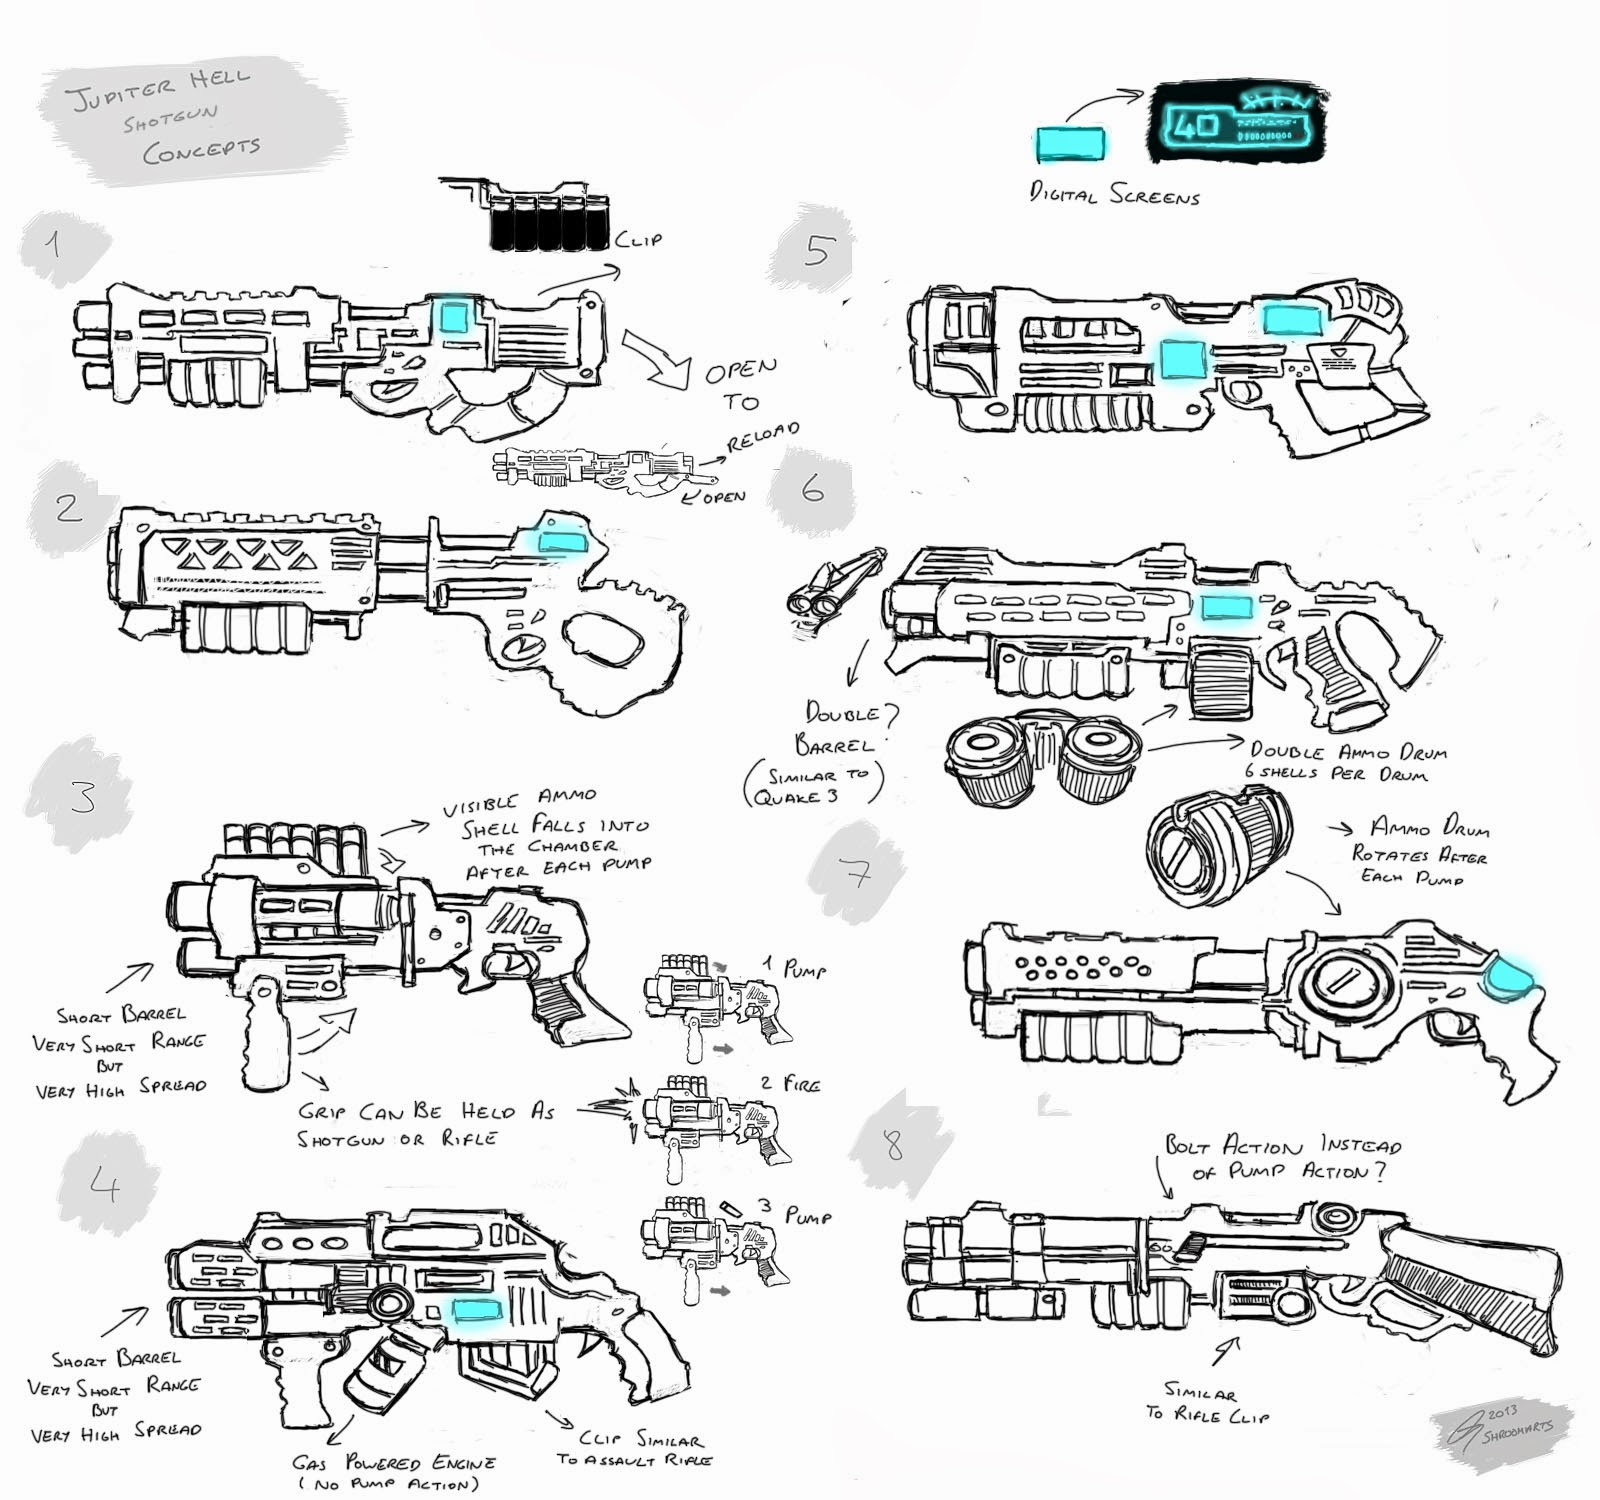 Jupiter Hell - Shotgun concepts